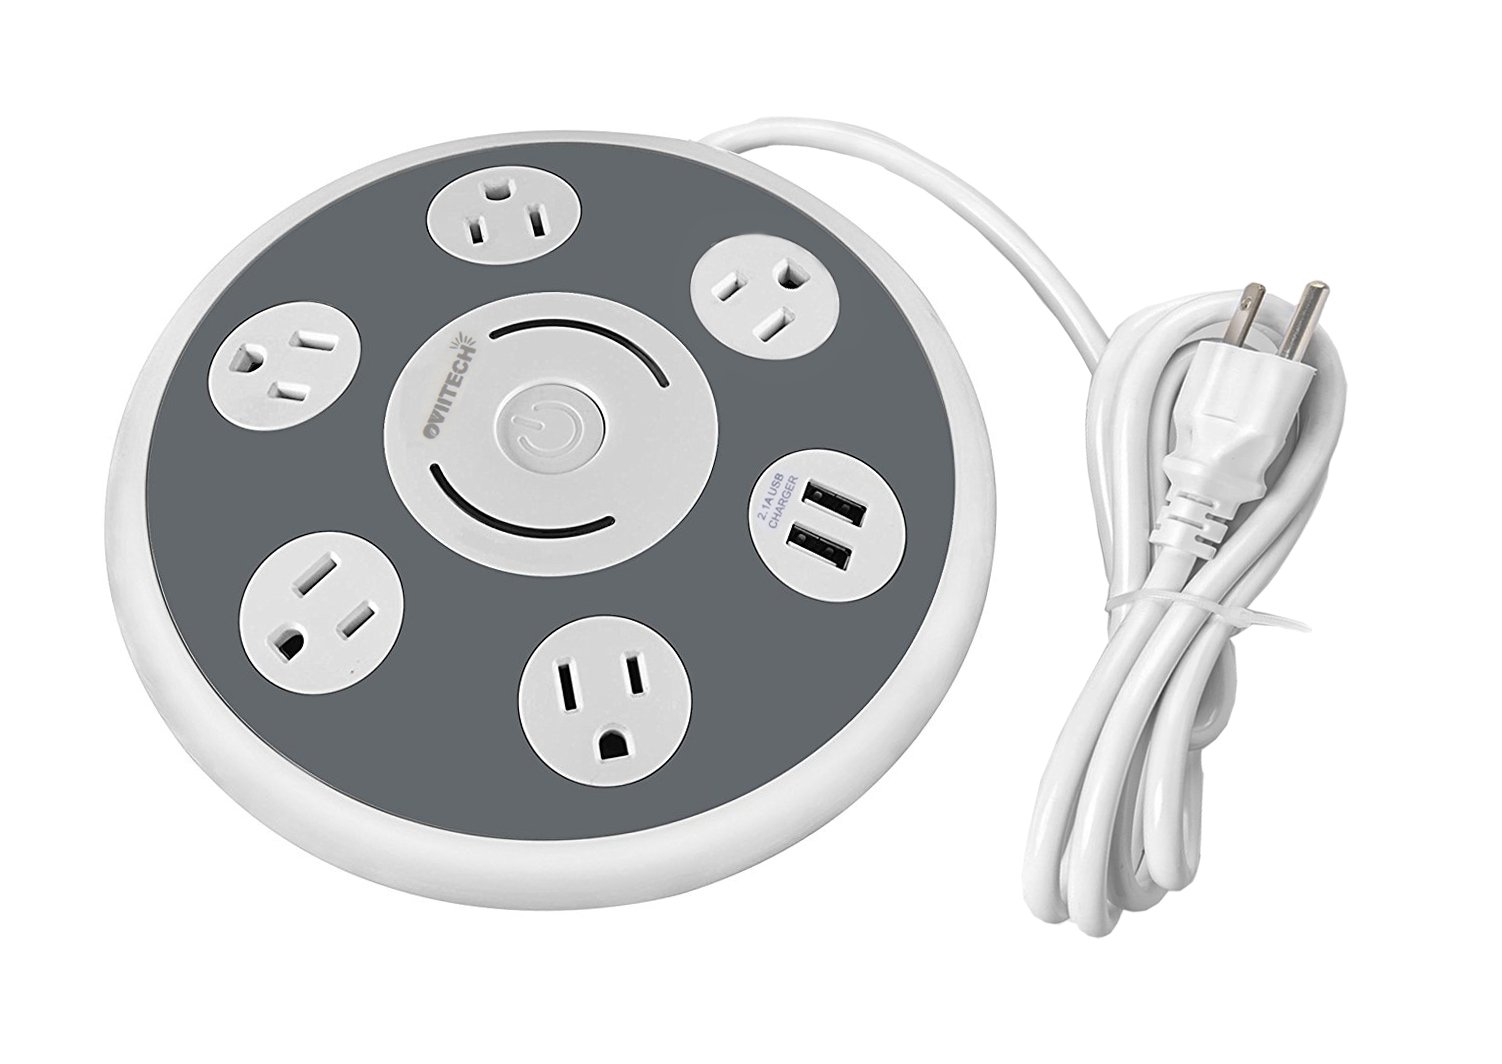 5 Multi Outlet Power Strip Surge Protector with 2 Quick USB Charging Ports, OviiTech Round Desktop Charging Station,UFO Shape, ETL Certified, White